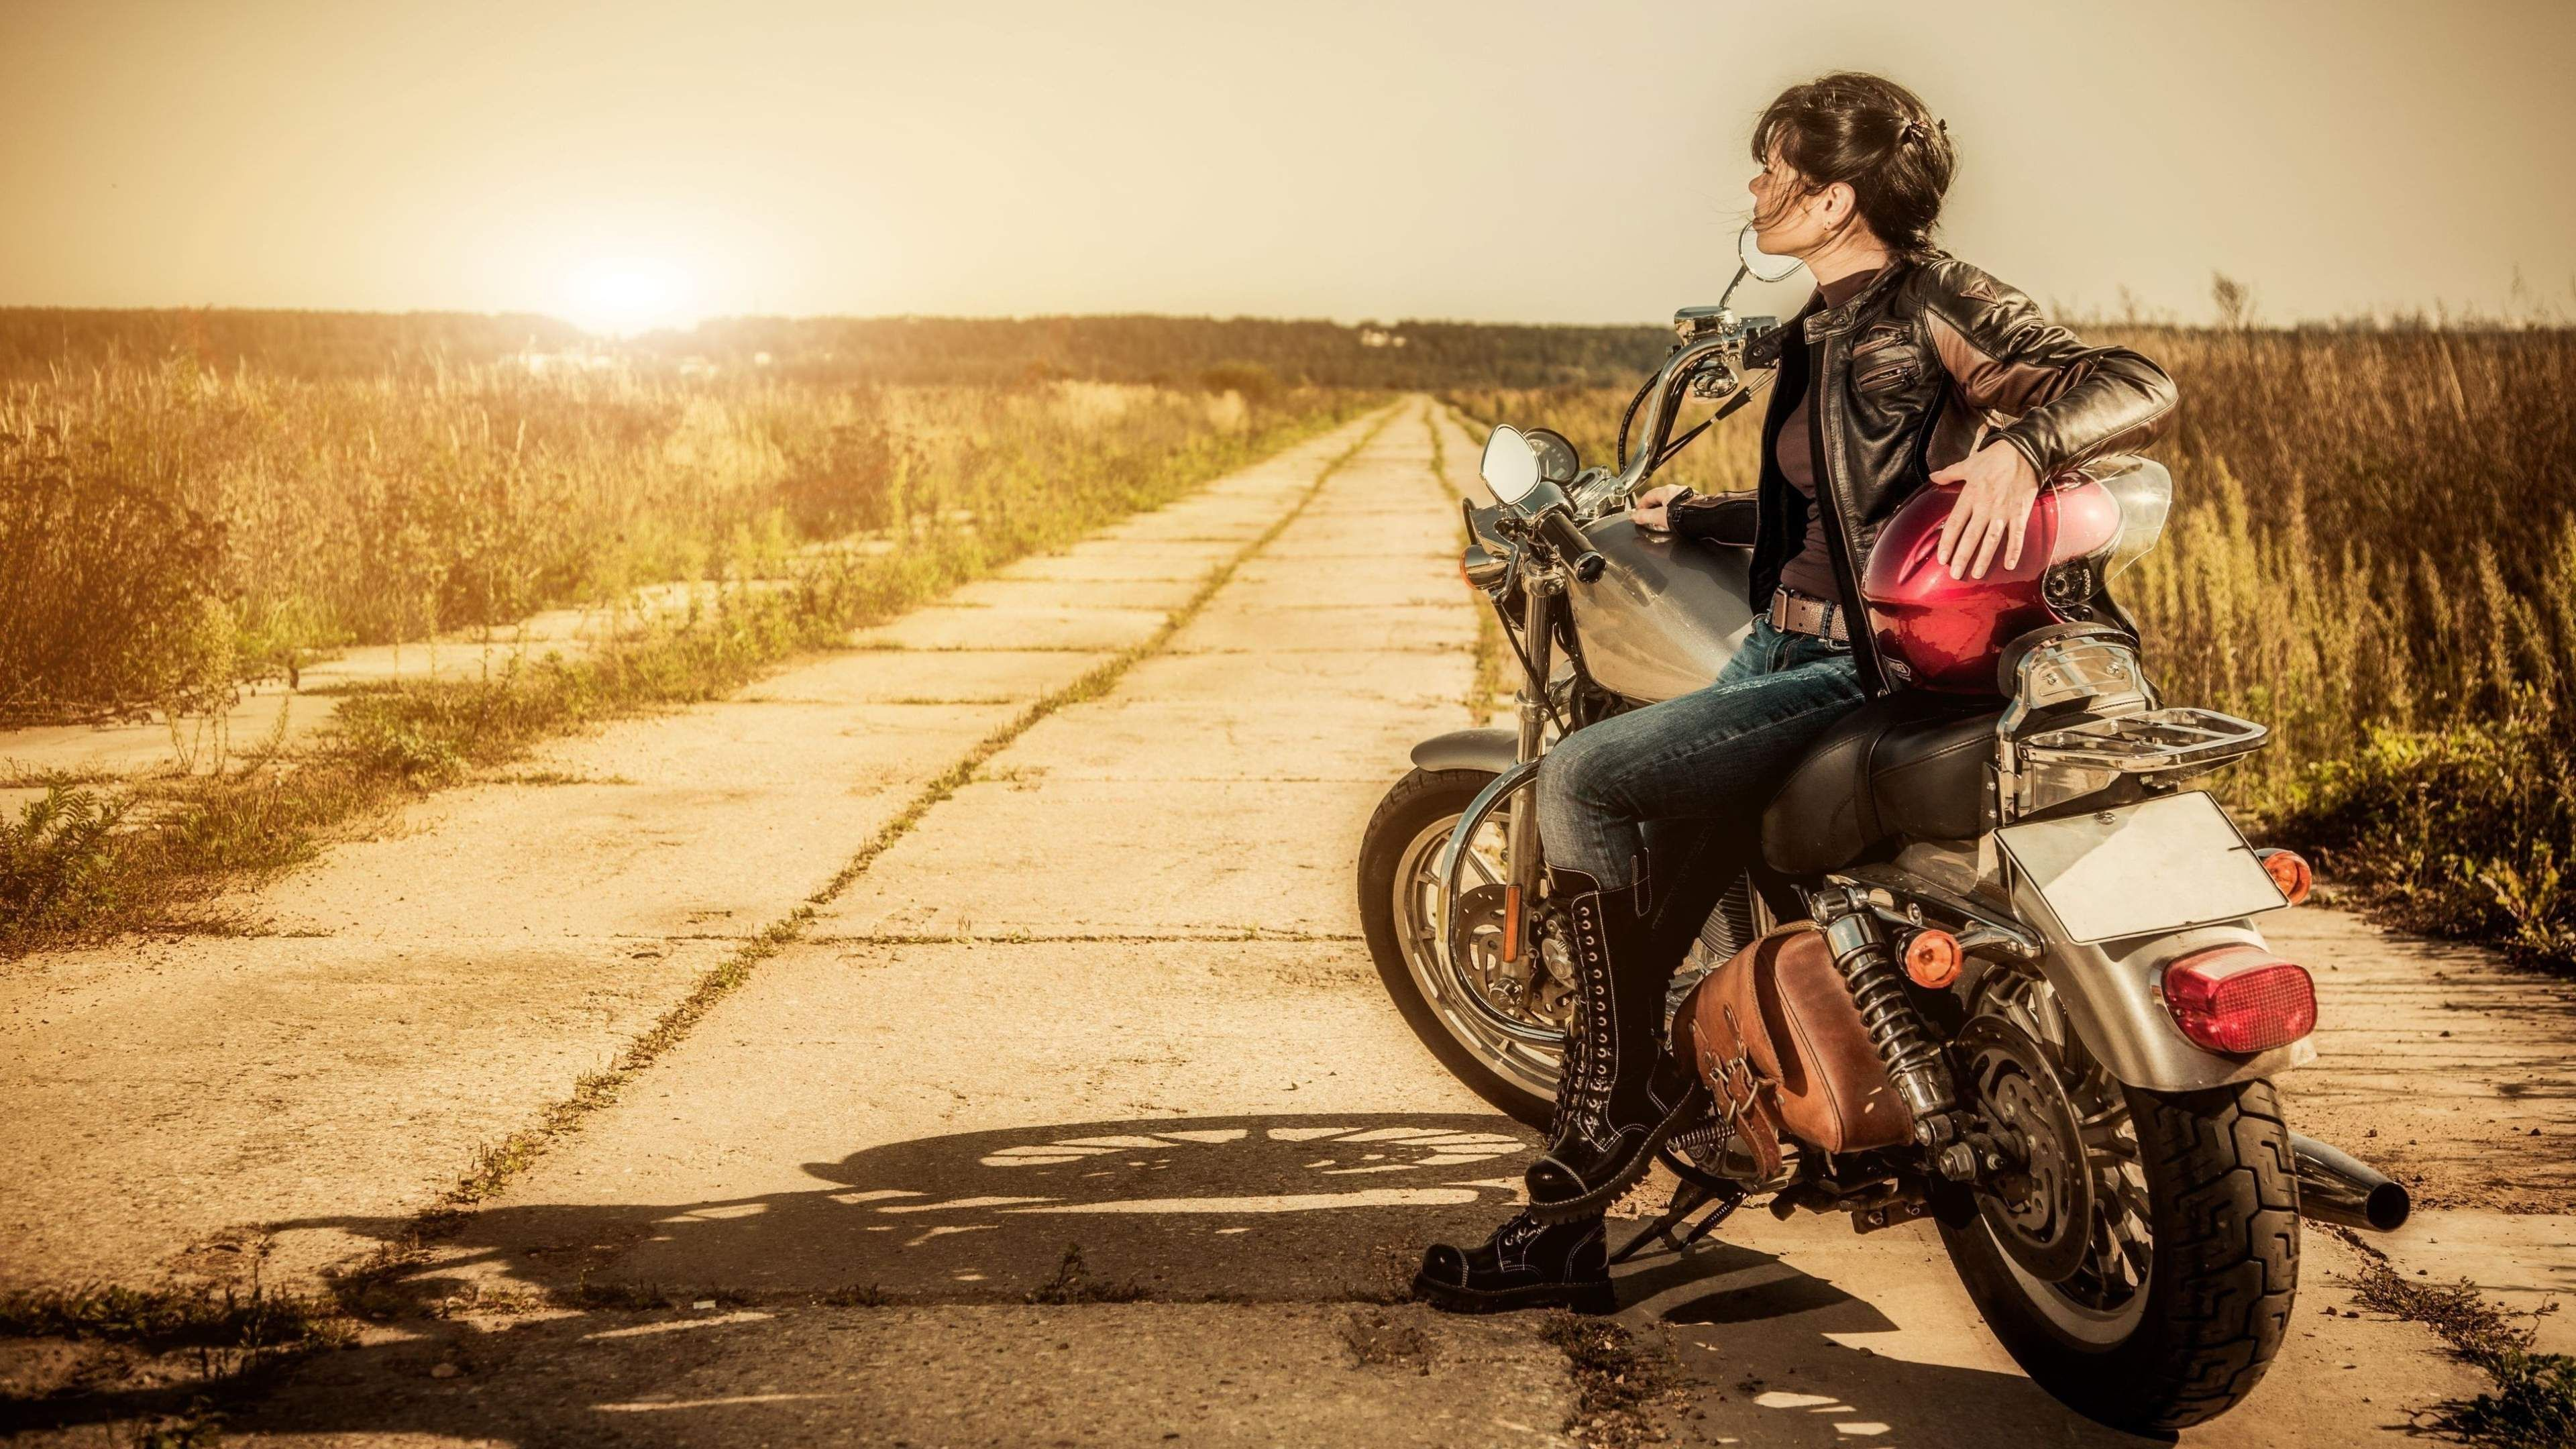 Biker Girl K Wallpaper With Images Female Motorcycle Riders